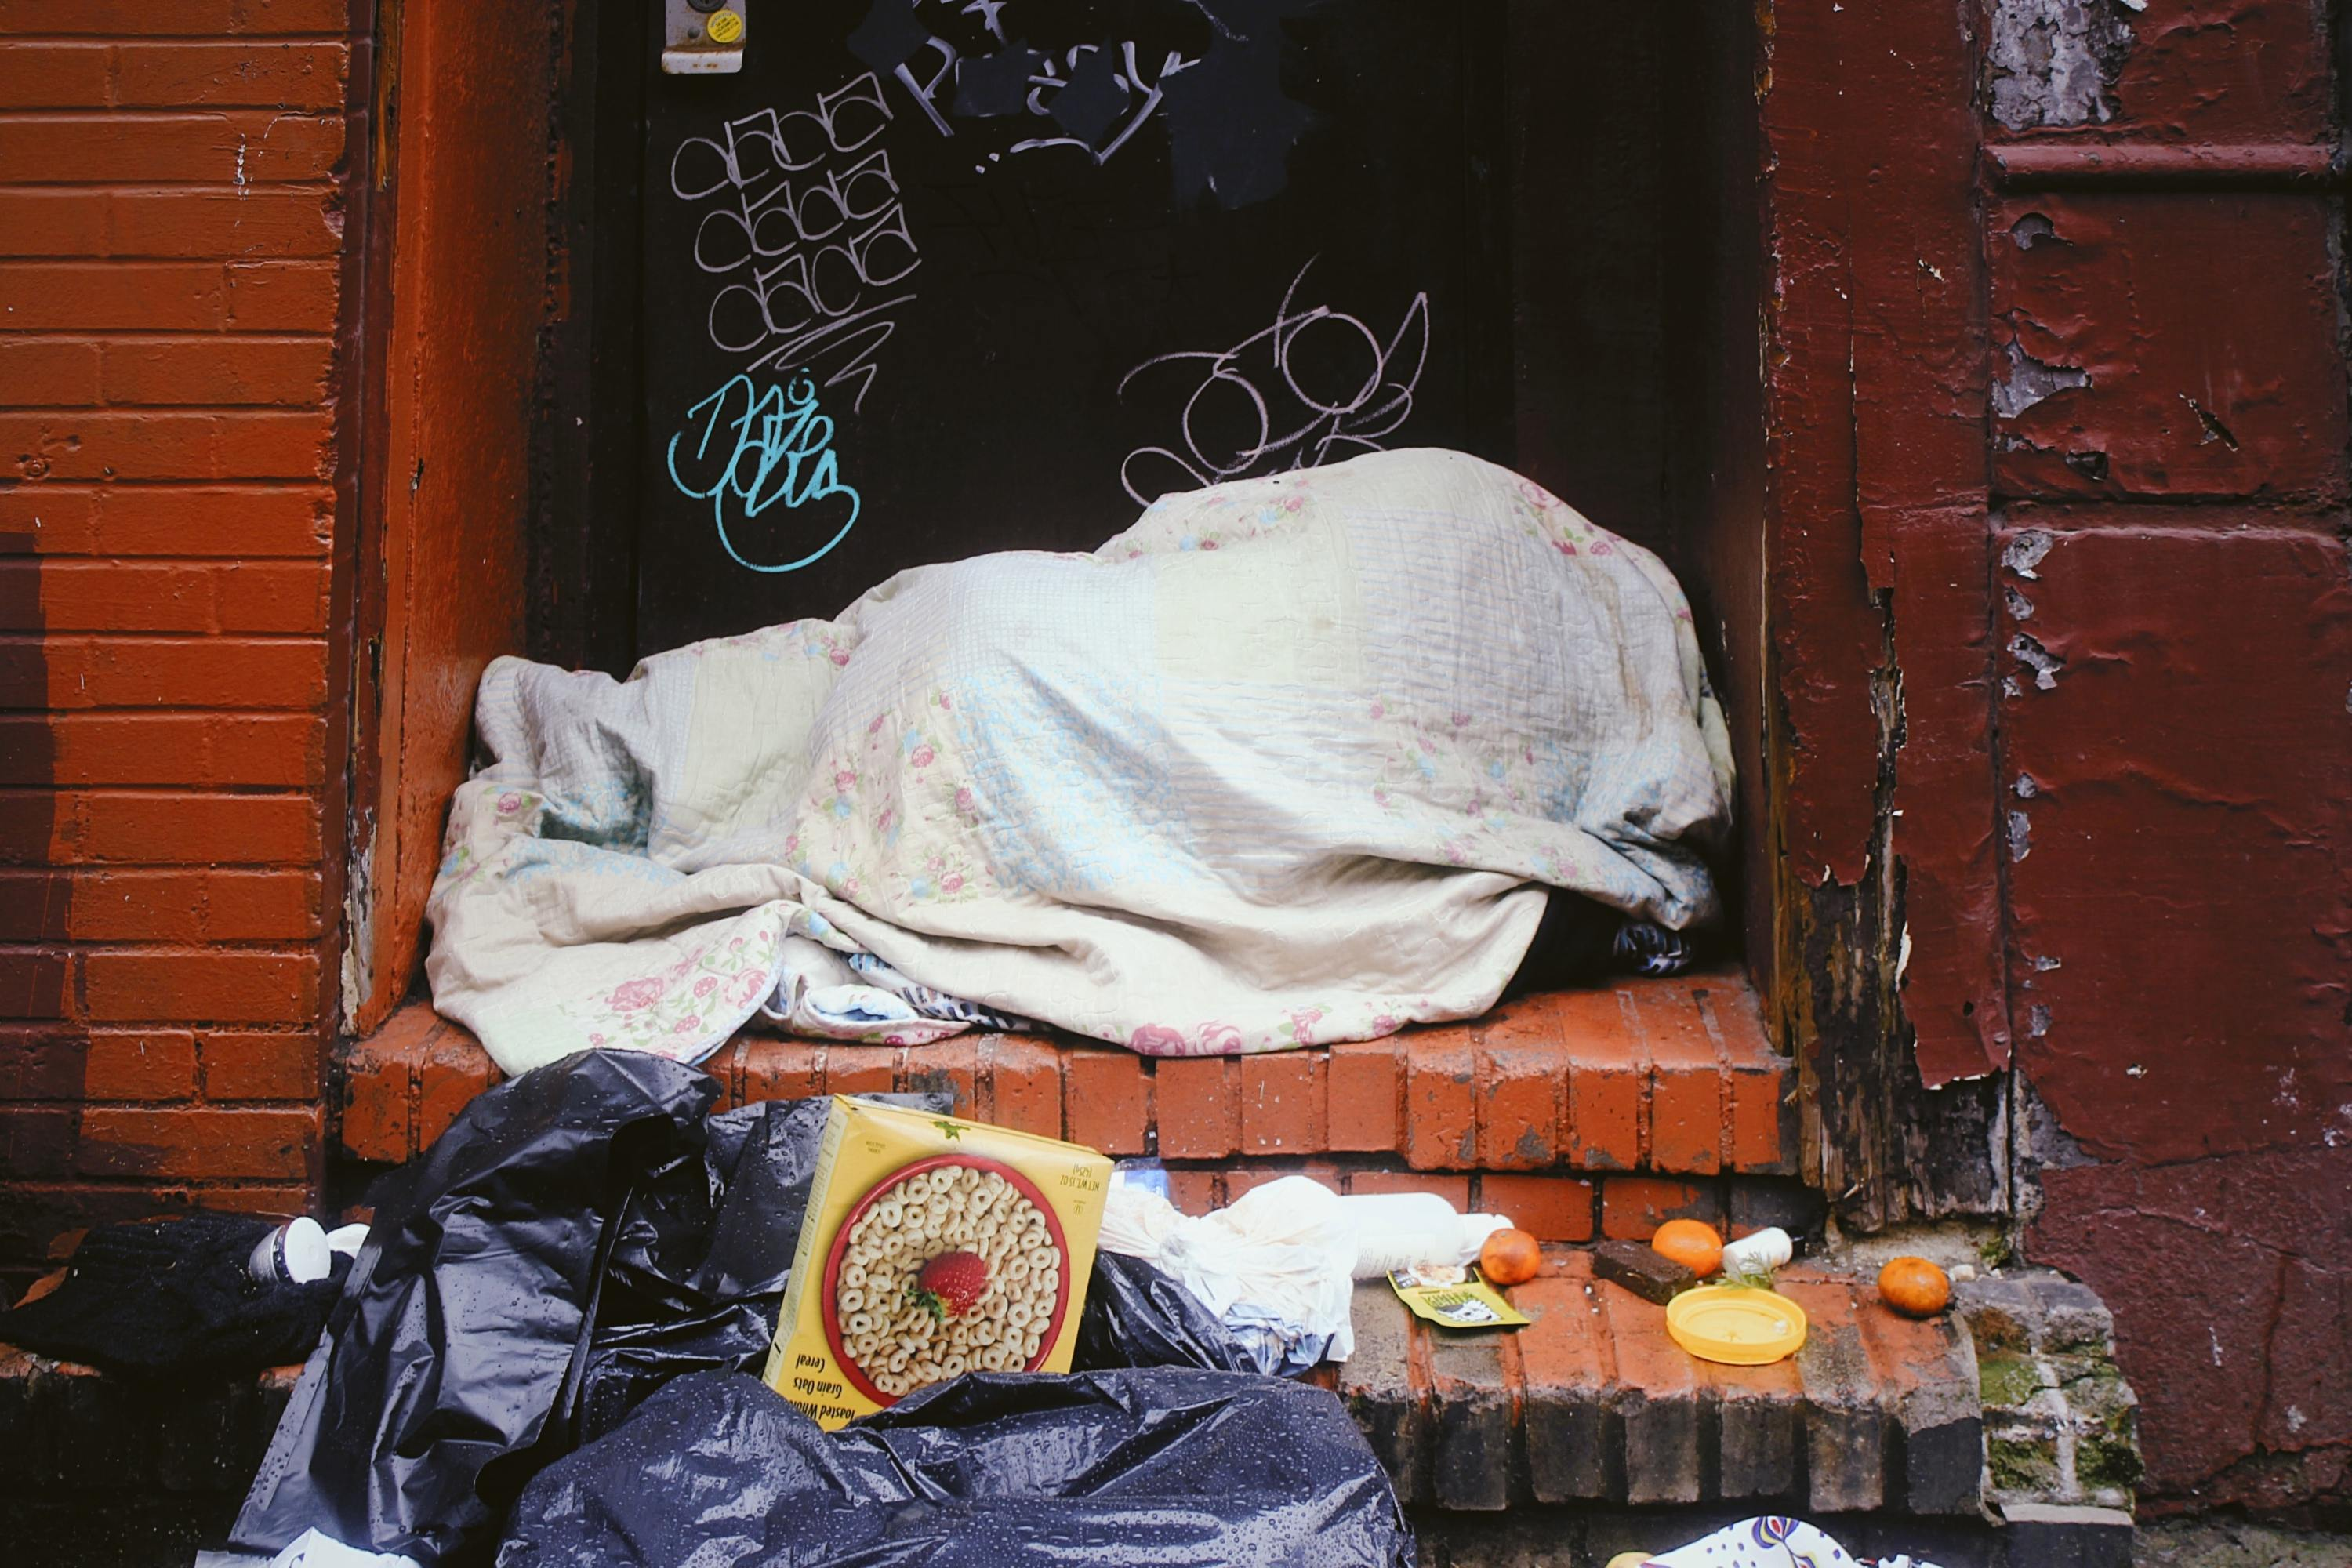 A homeless person bundled up on the street.